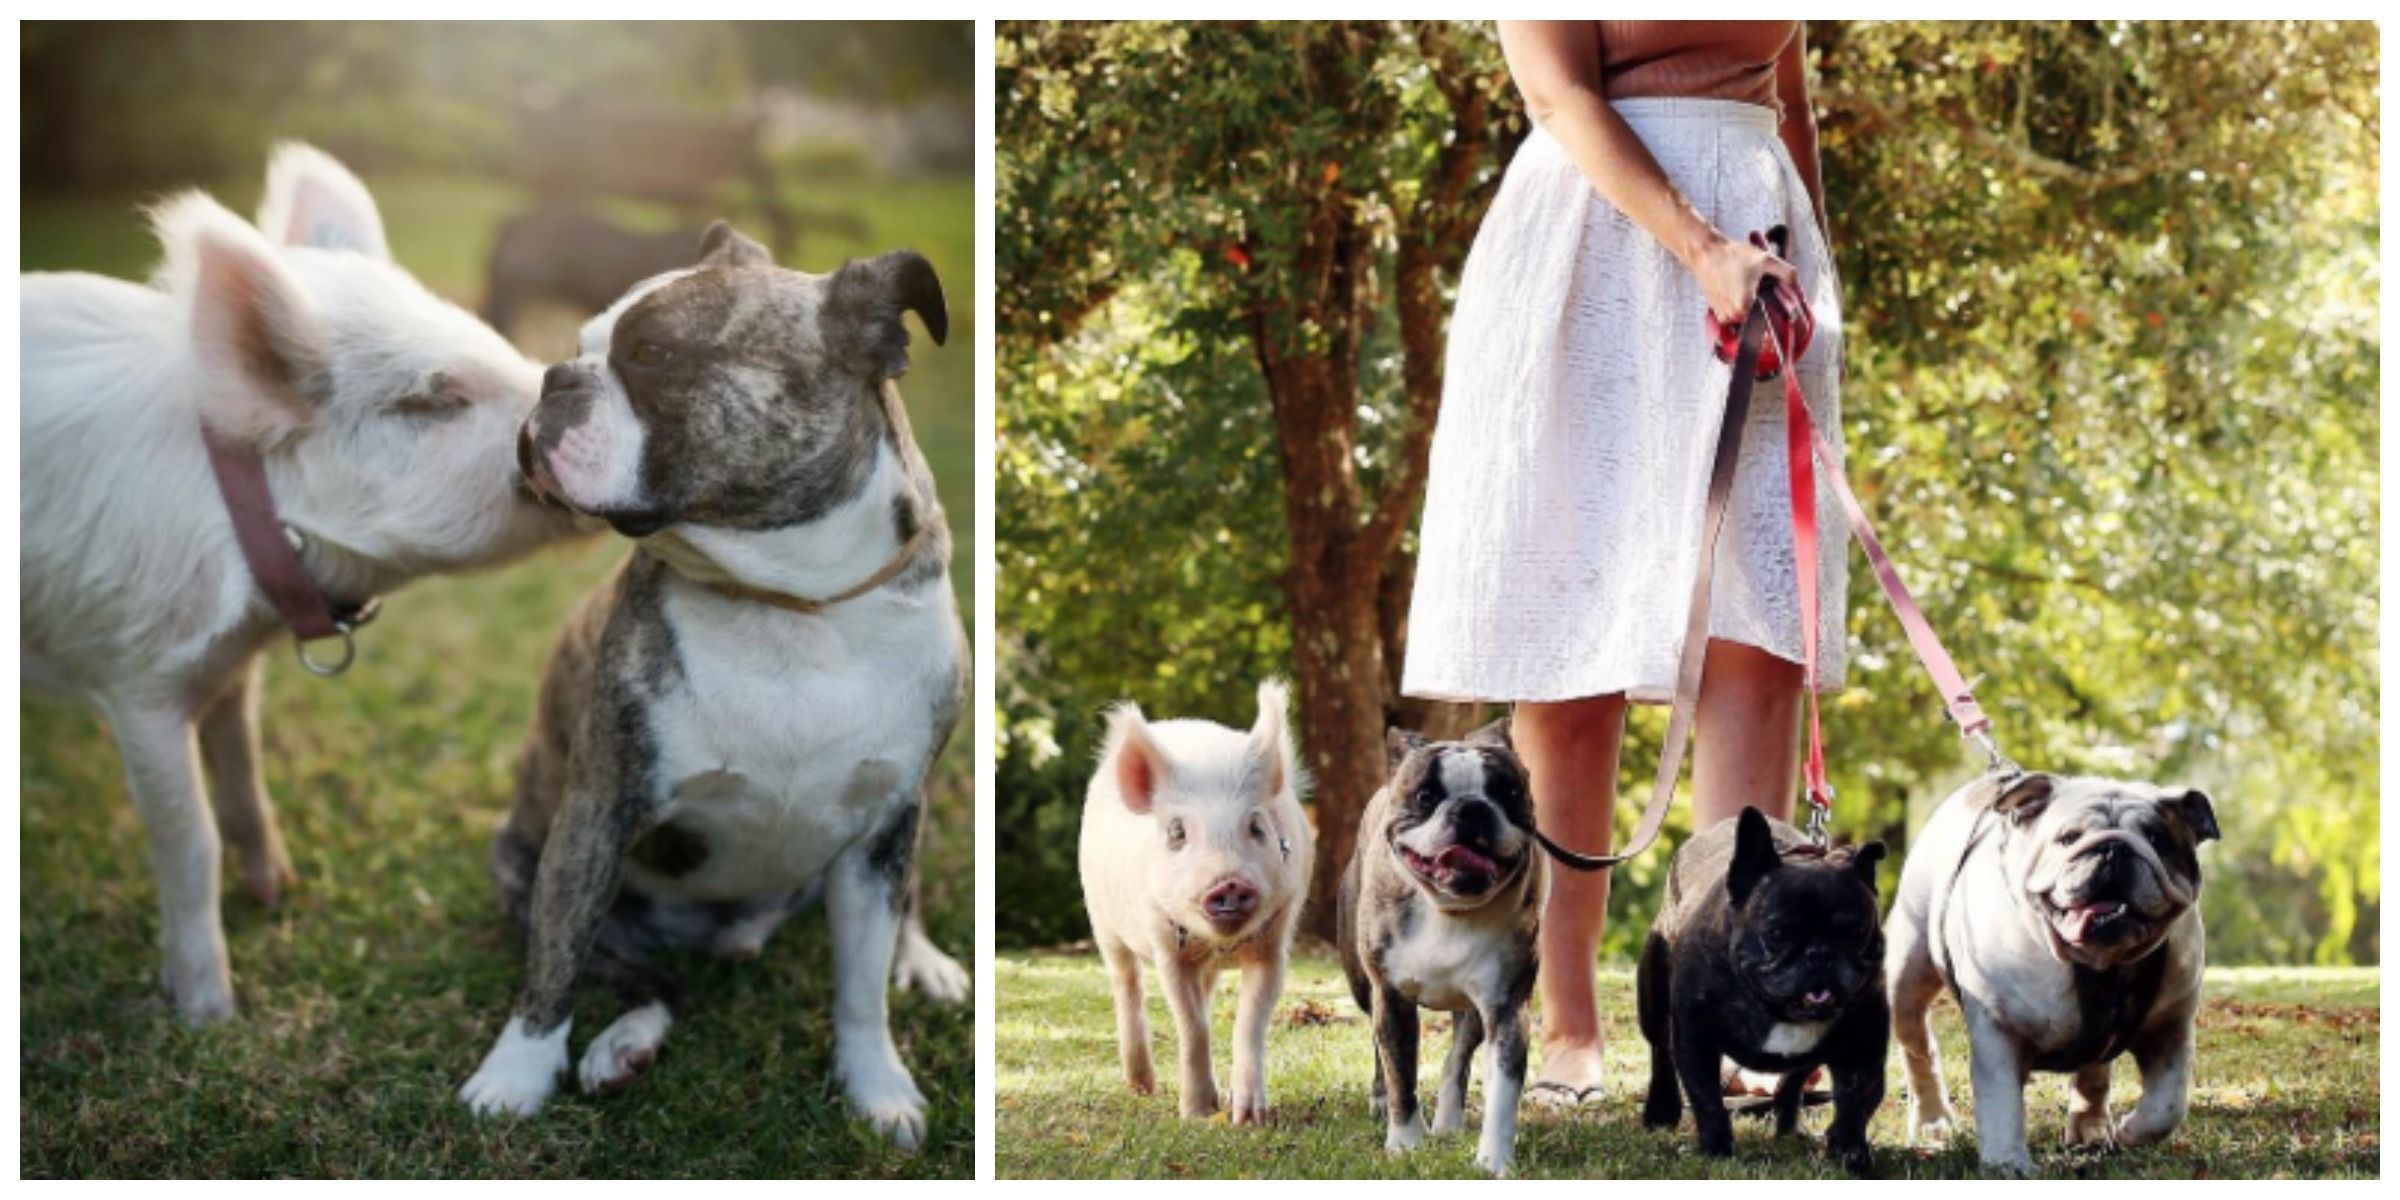 This Pig Spends So Much Time With Her Dog Siblings She Thinks She's One Of Them